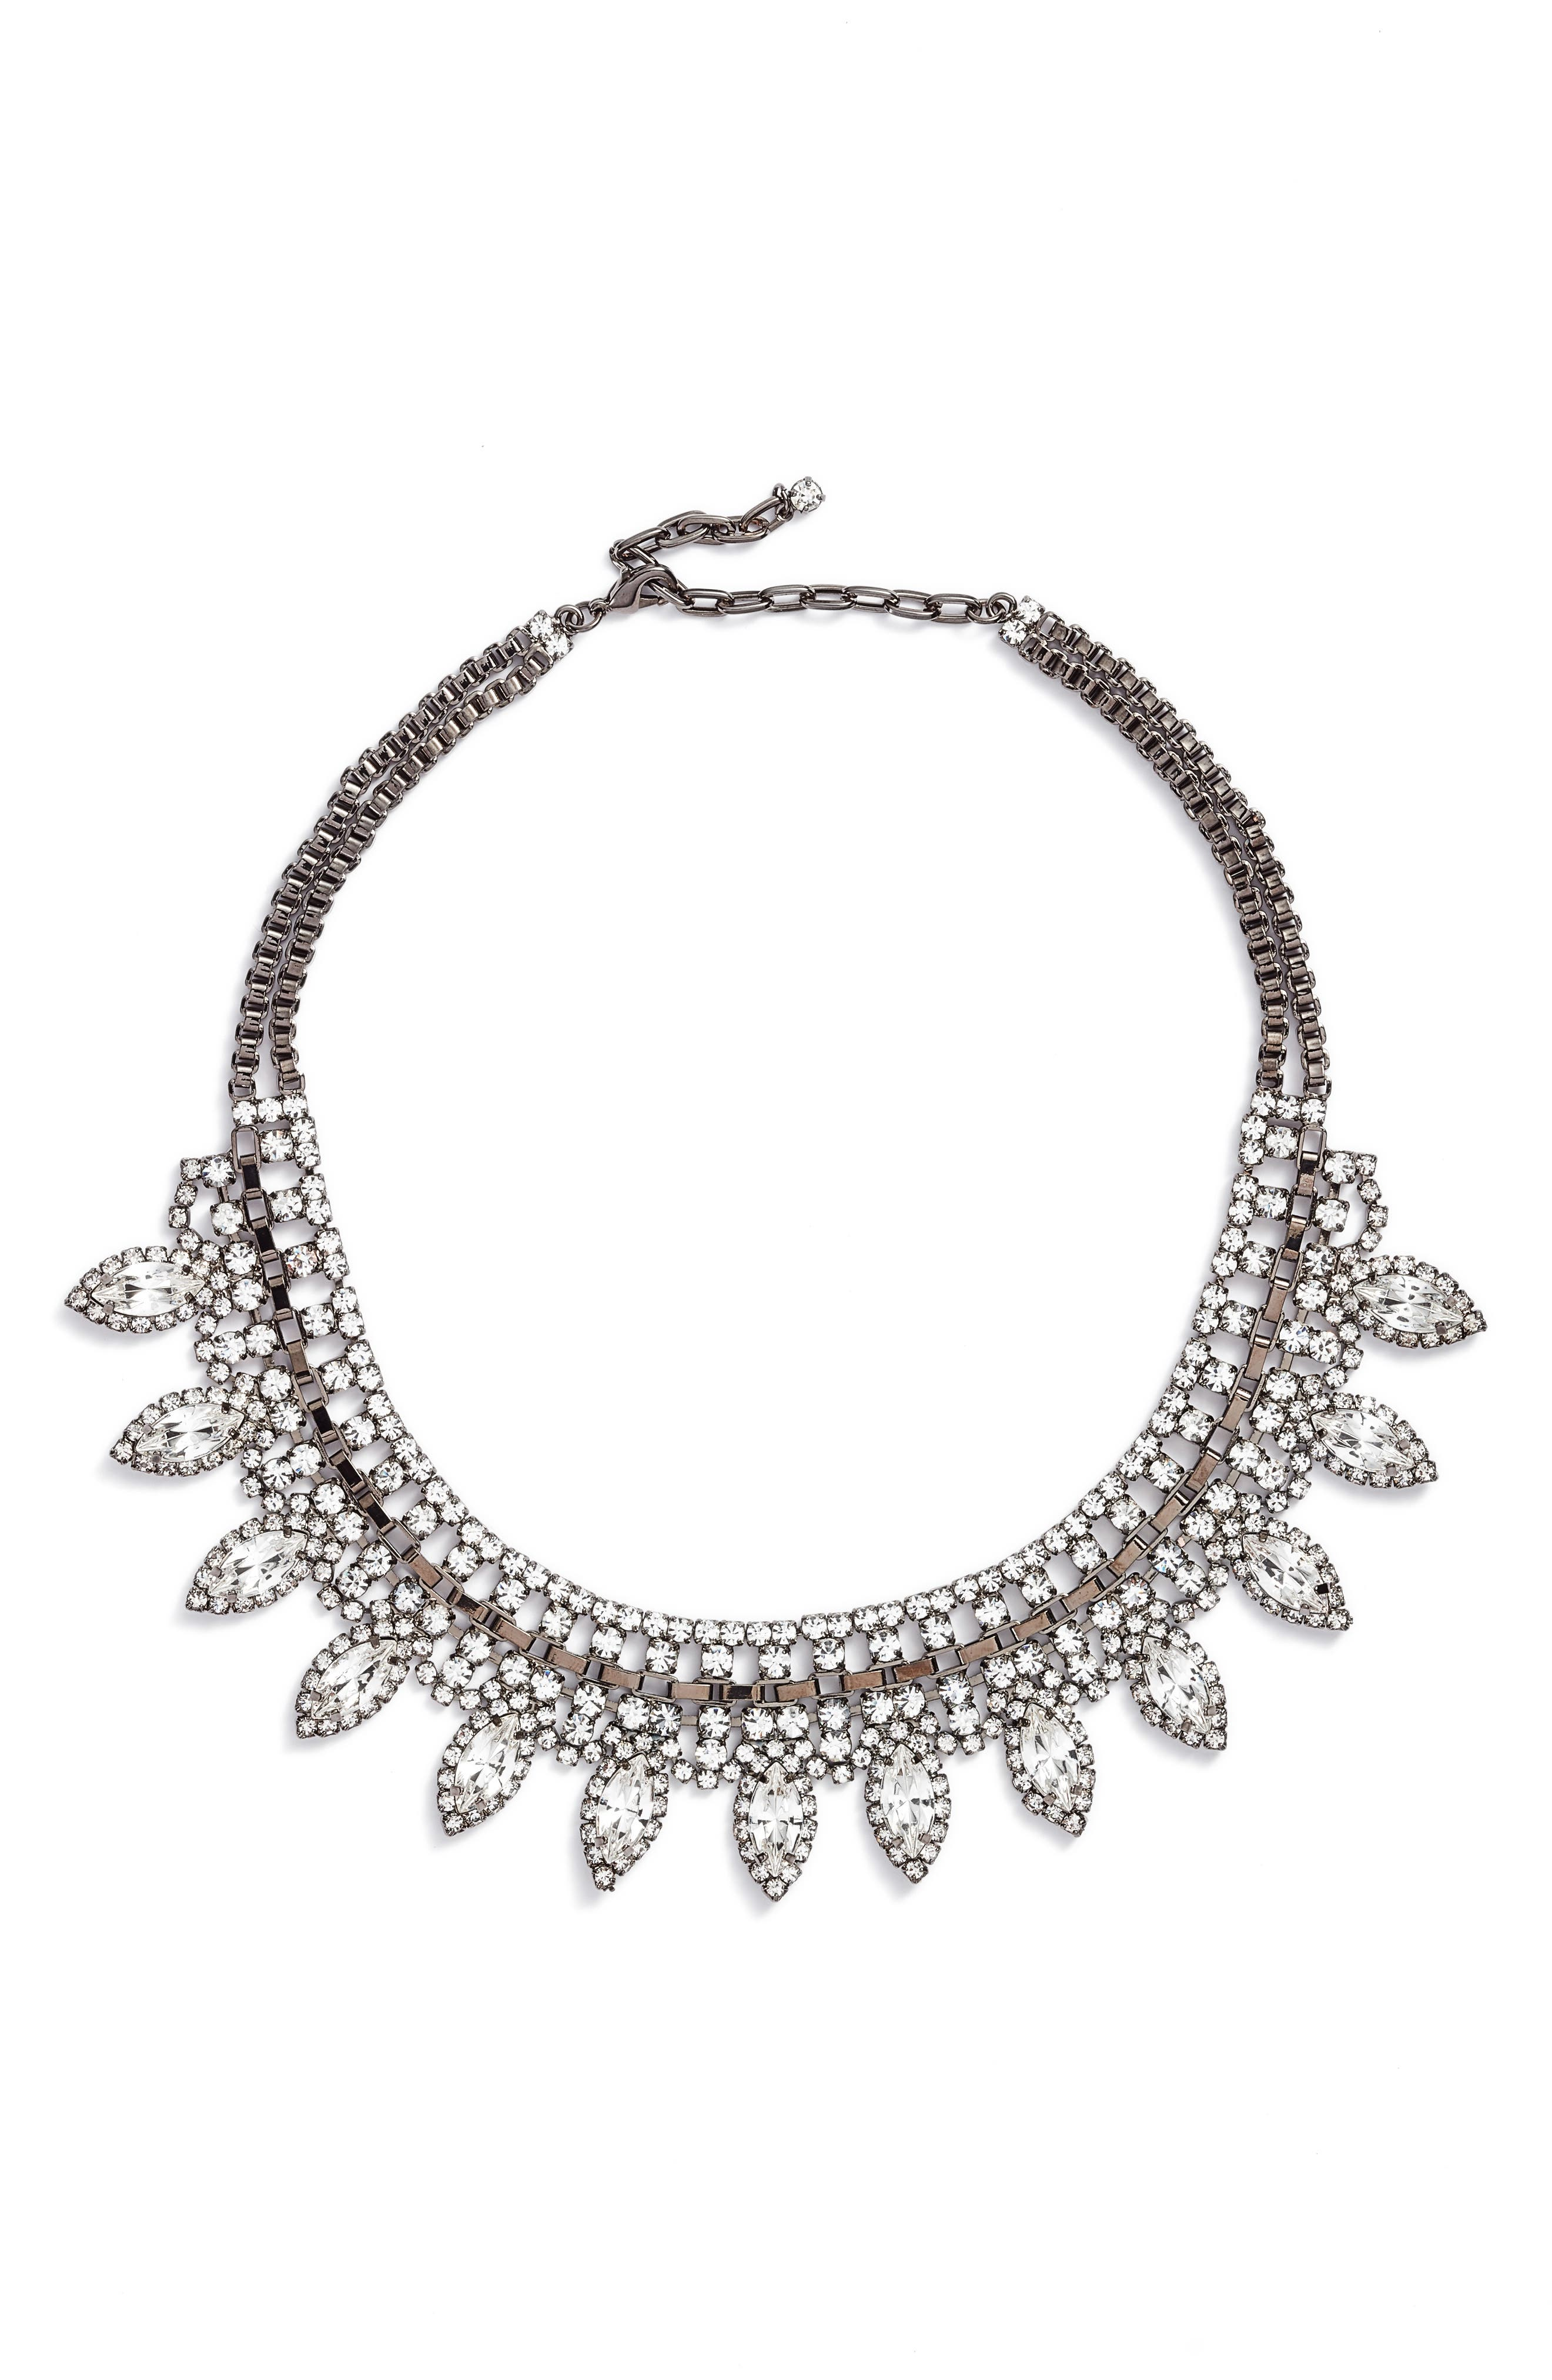 Main Image - CRISTABELLE Large Navette Frontal Necklace